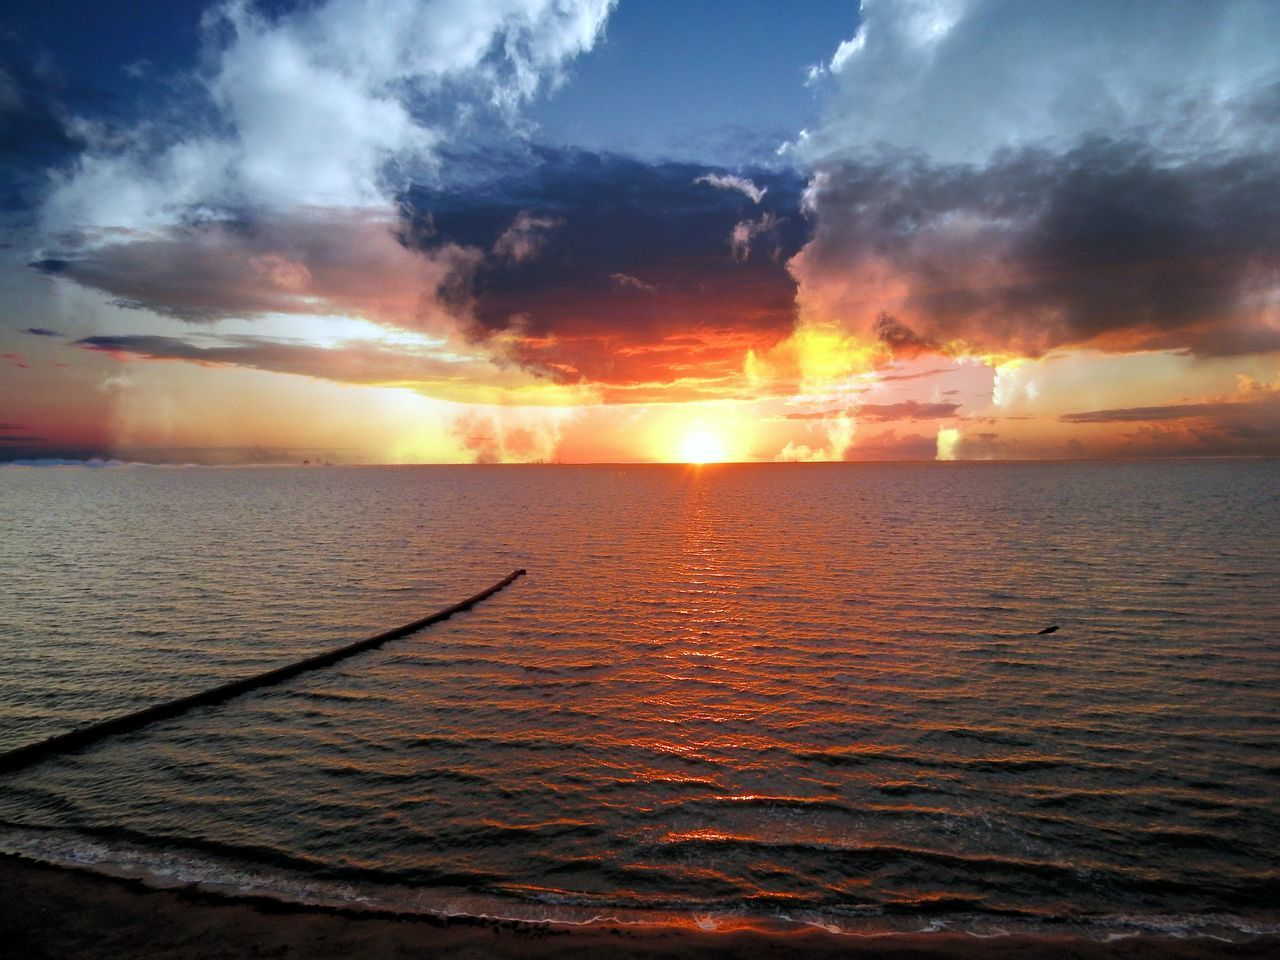 sunset, sea, orange color, scenics, beauty in nature, water, sky, cloud - sky, tranquility, tranquil scene, nature, horizon over water, sun, silhouette, idyllic, no people, outdoors, sunlight, day